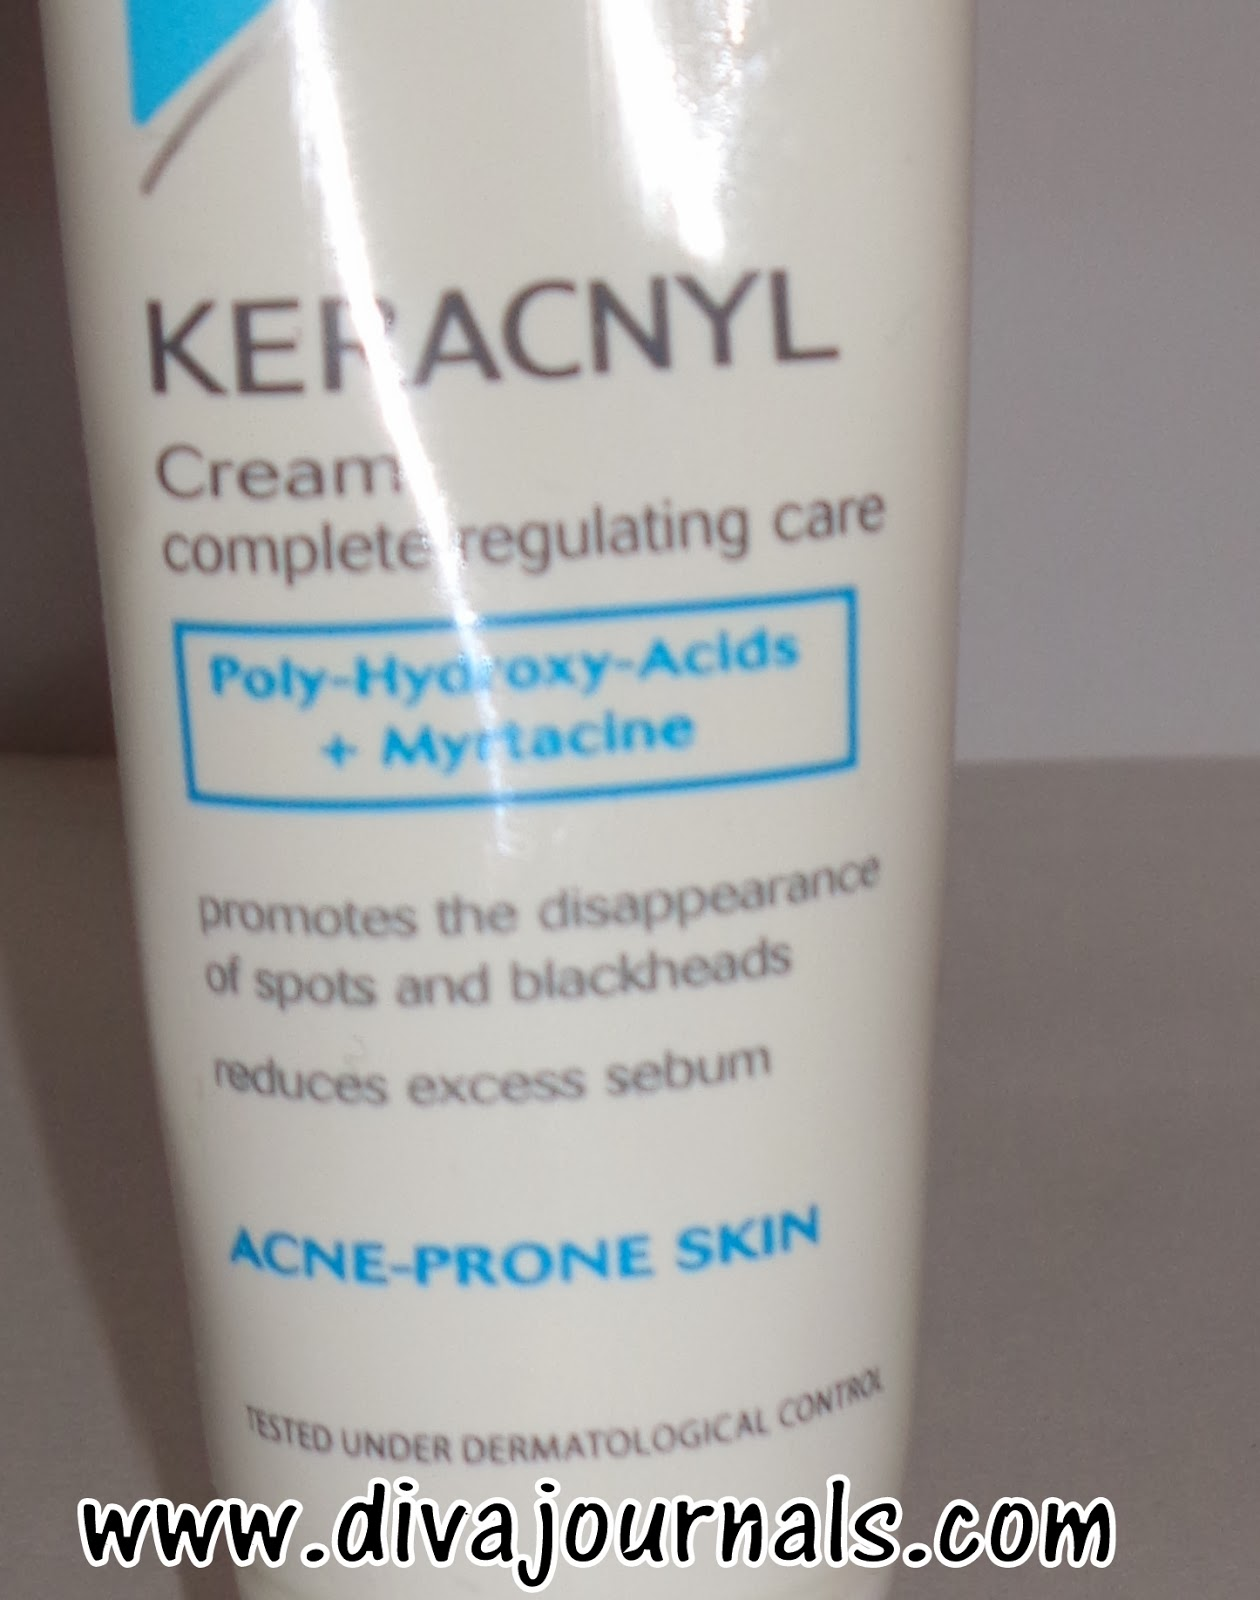 2)Ducray Keracnyl Complete Regulating Care Cream